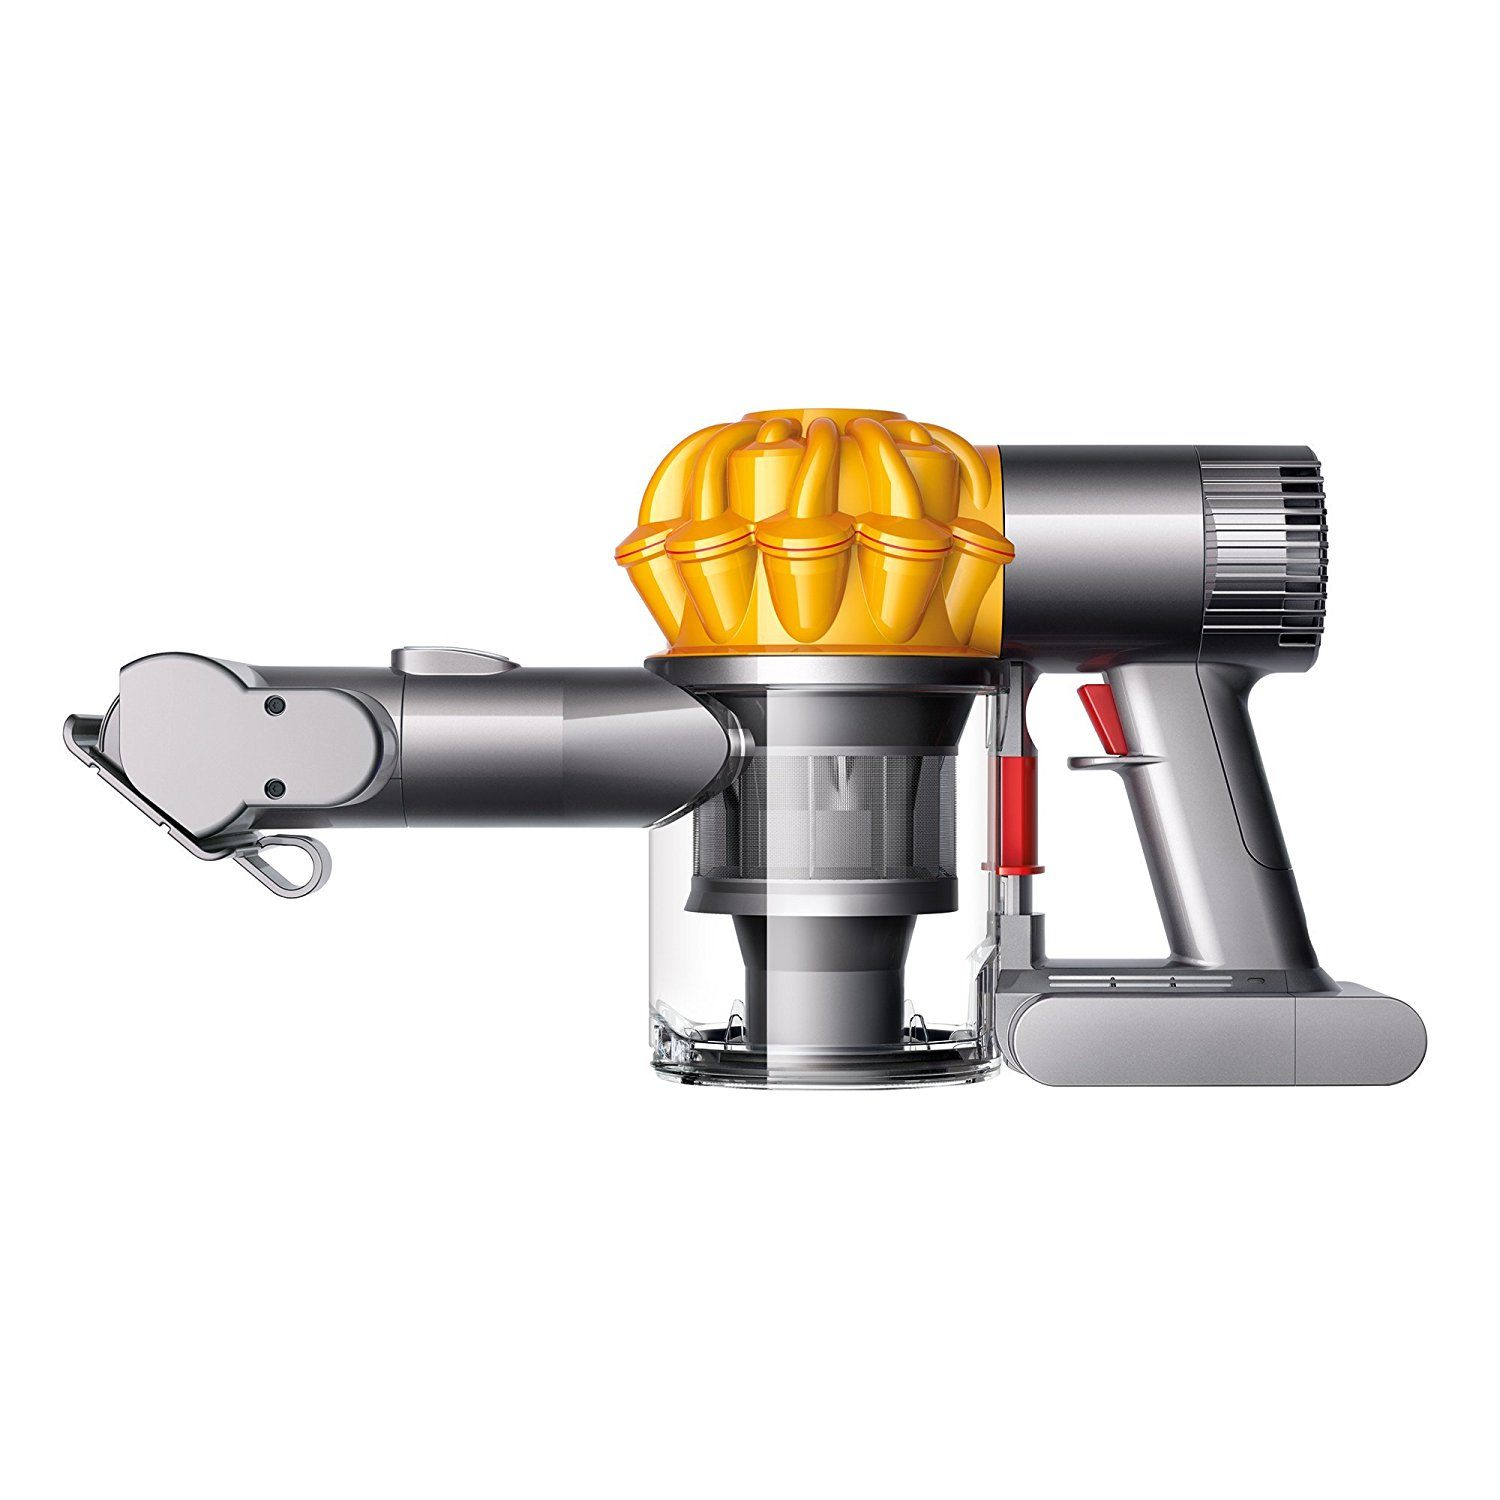 Dyson V6 Top Dog vacuum cleaner review